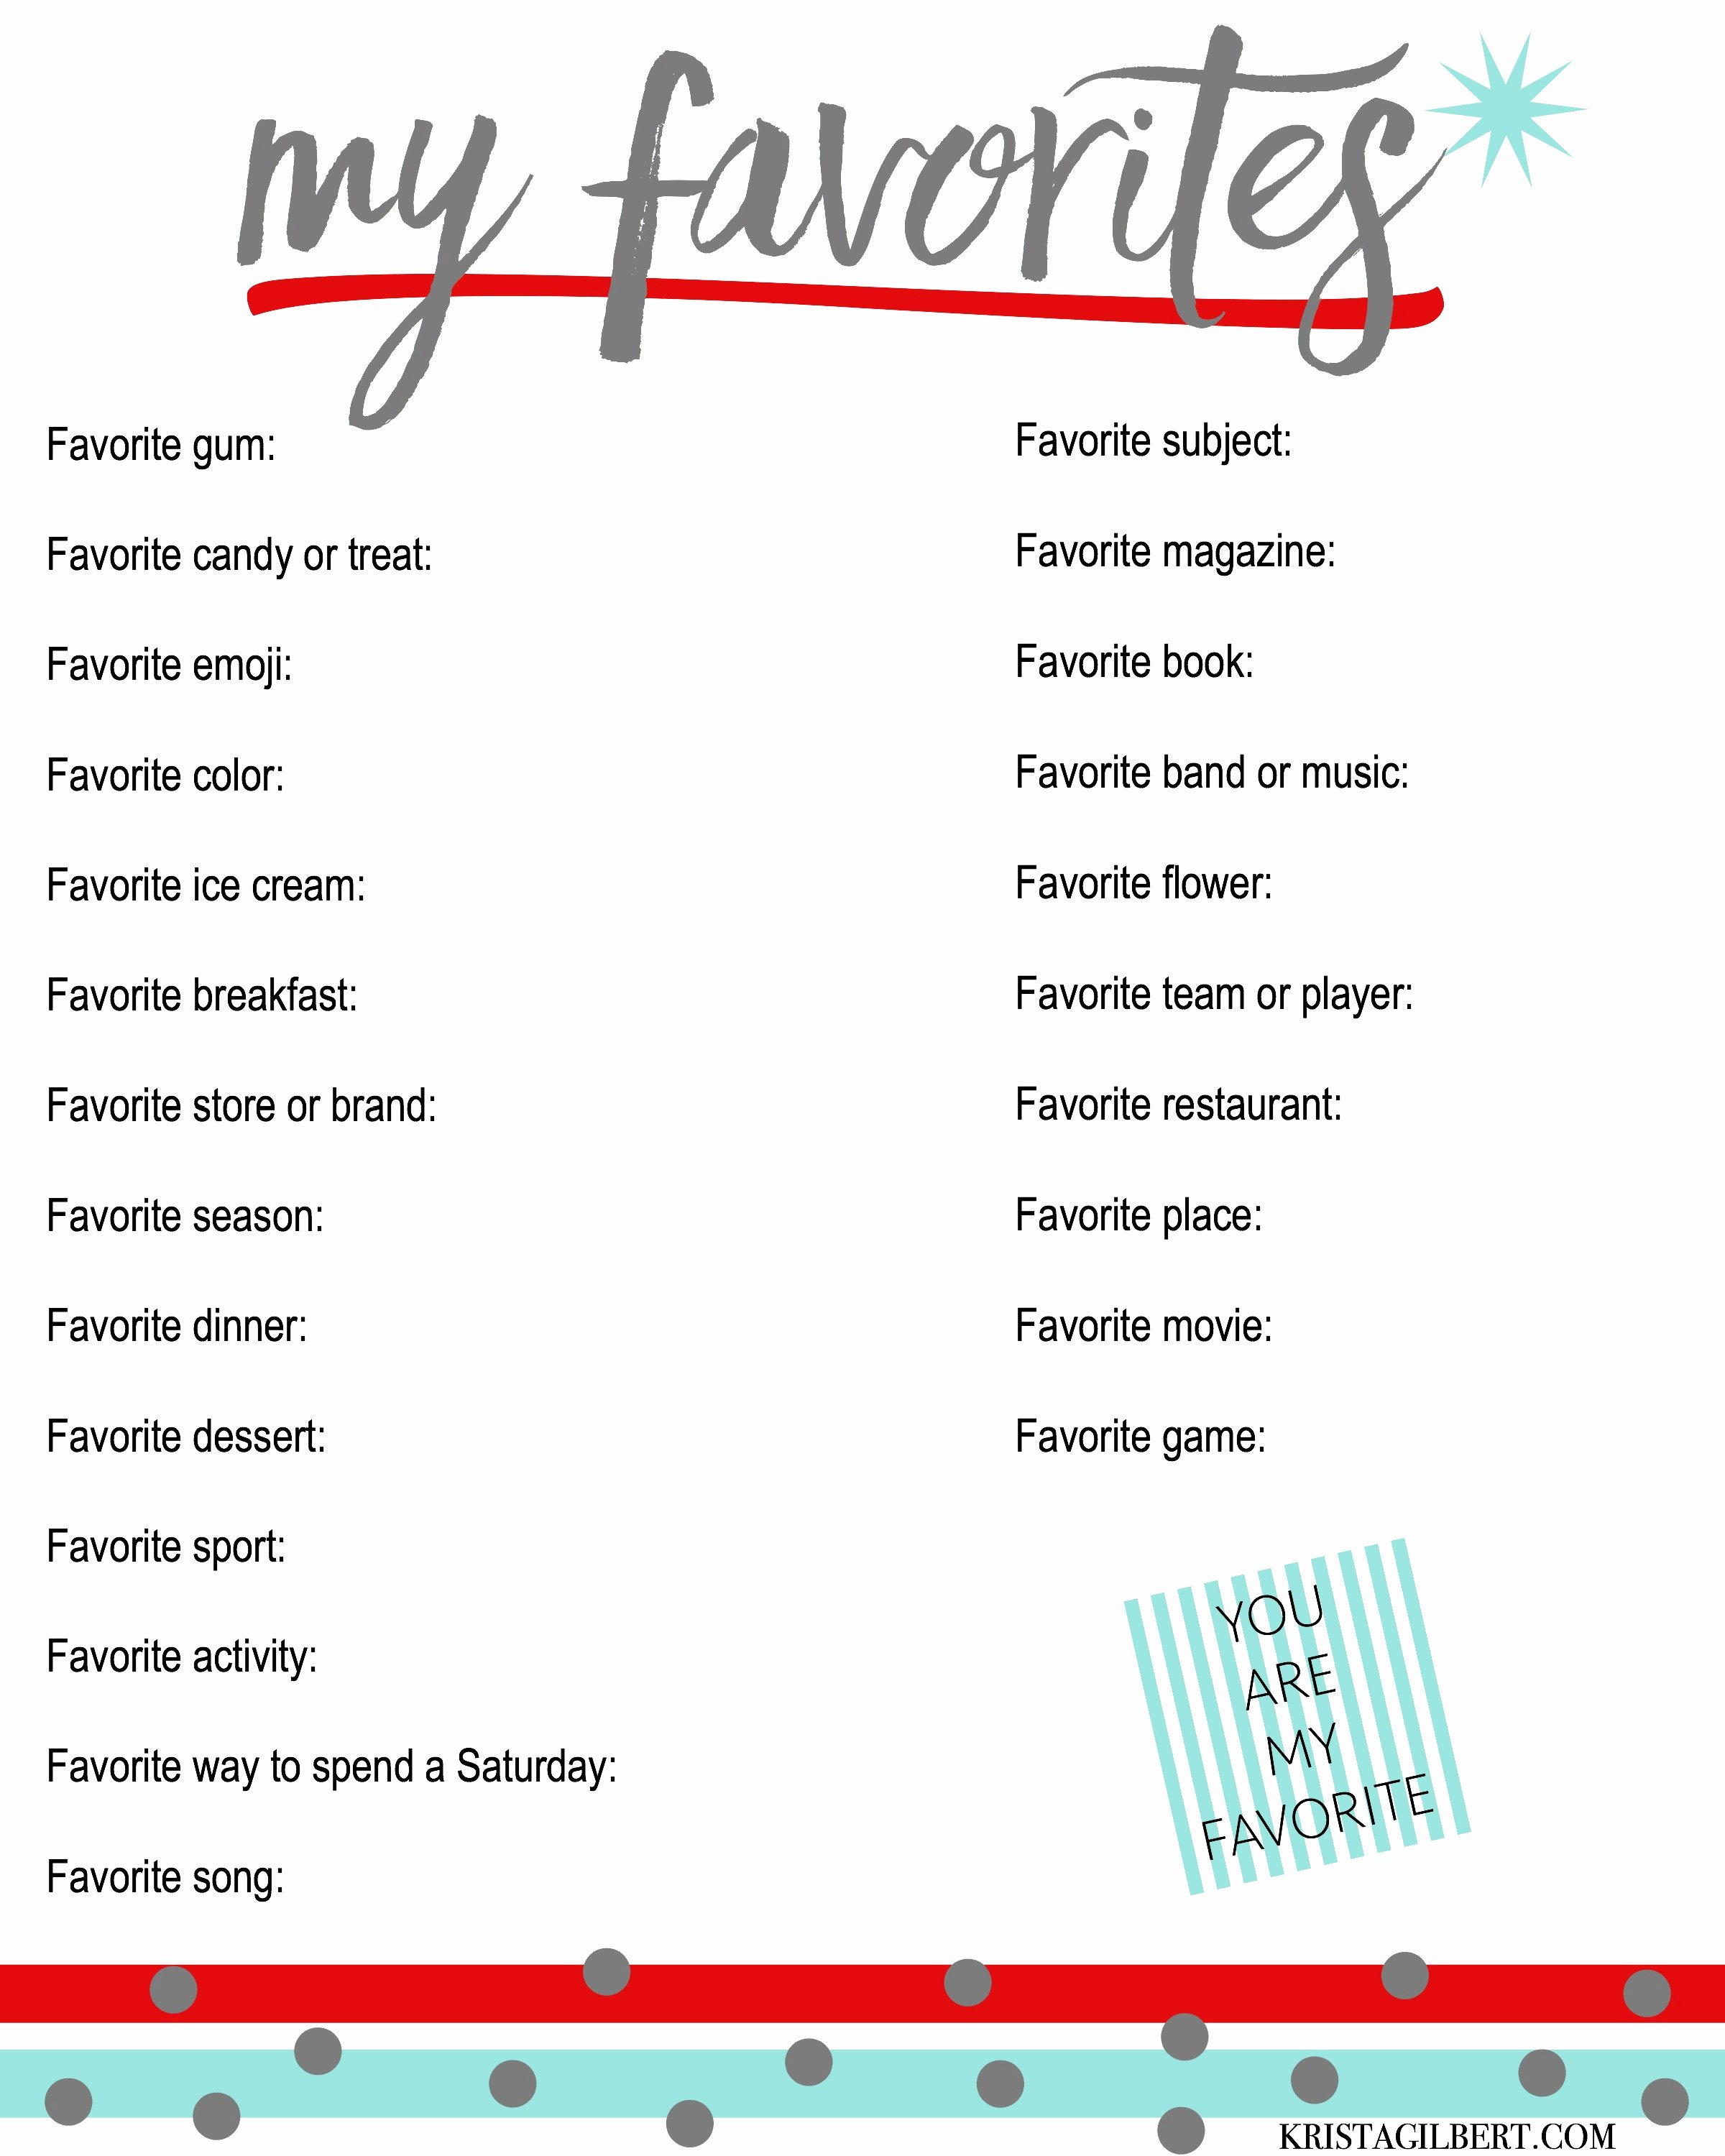 My Favorite Things List Template Beautiful A List Of Your Family S Favorite Things Know them